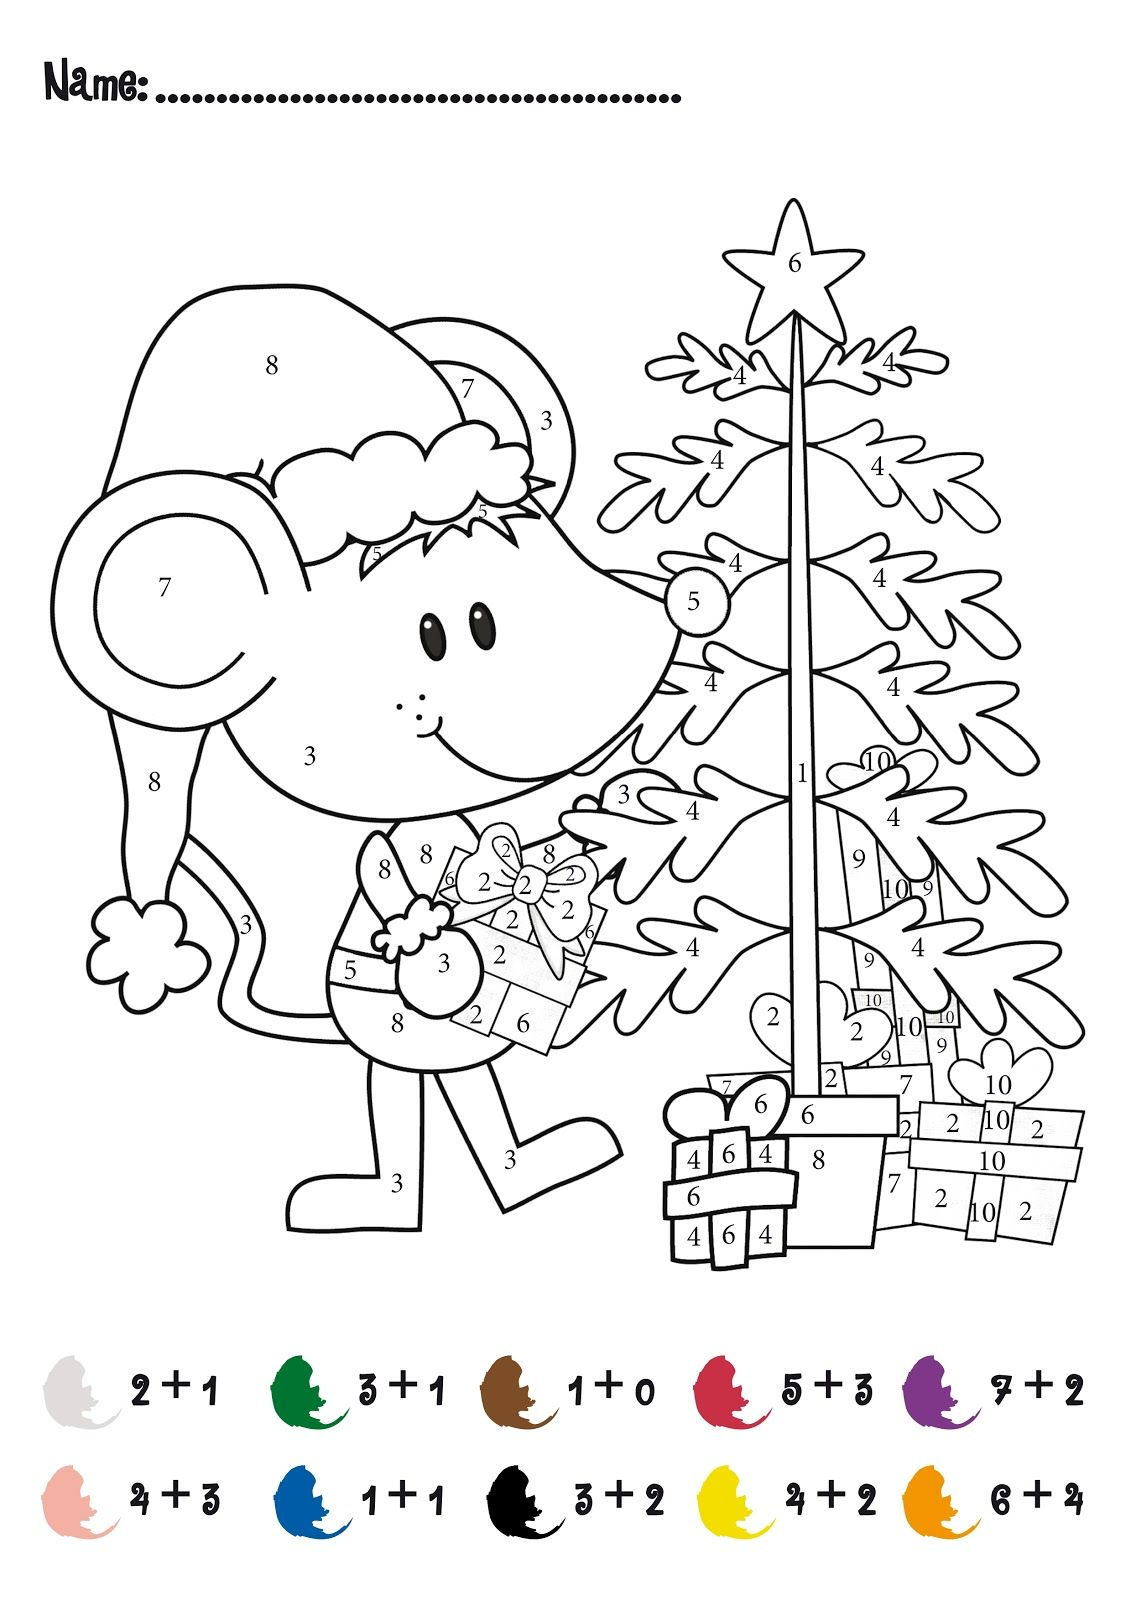 Worksheet 680880 Christmas Math Worksheets Christmas and – Math Worksheets Christmas